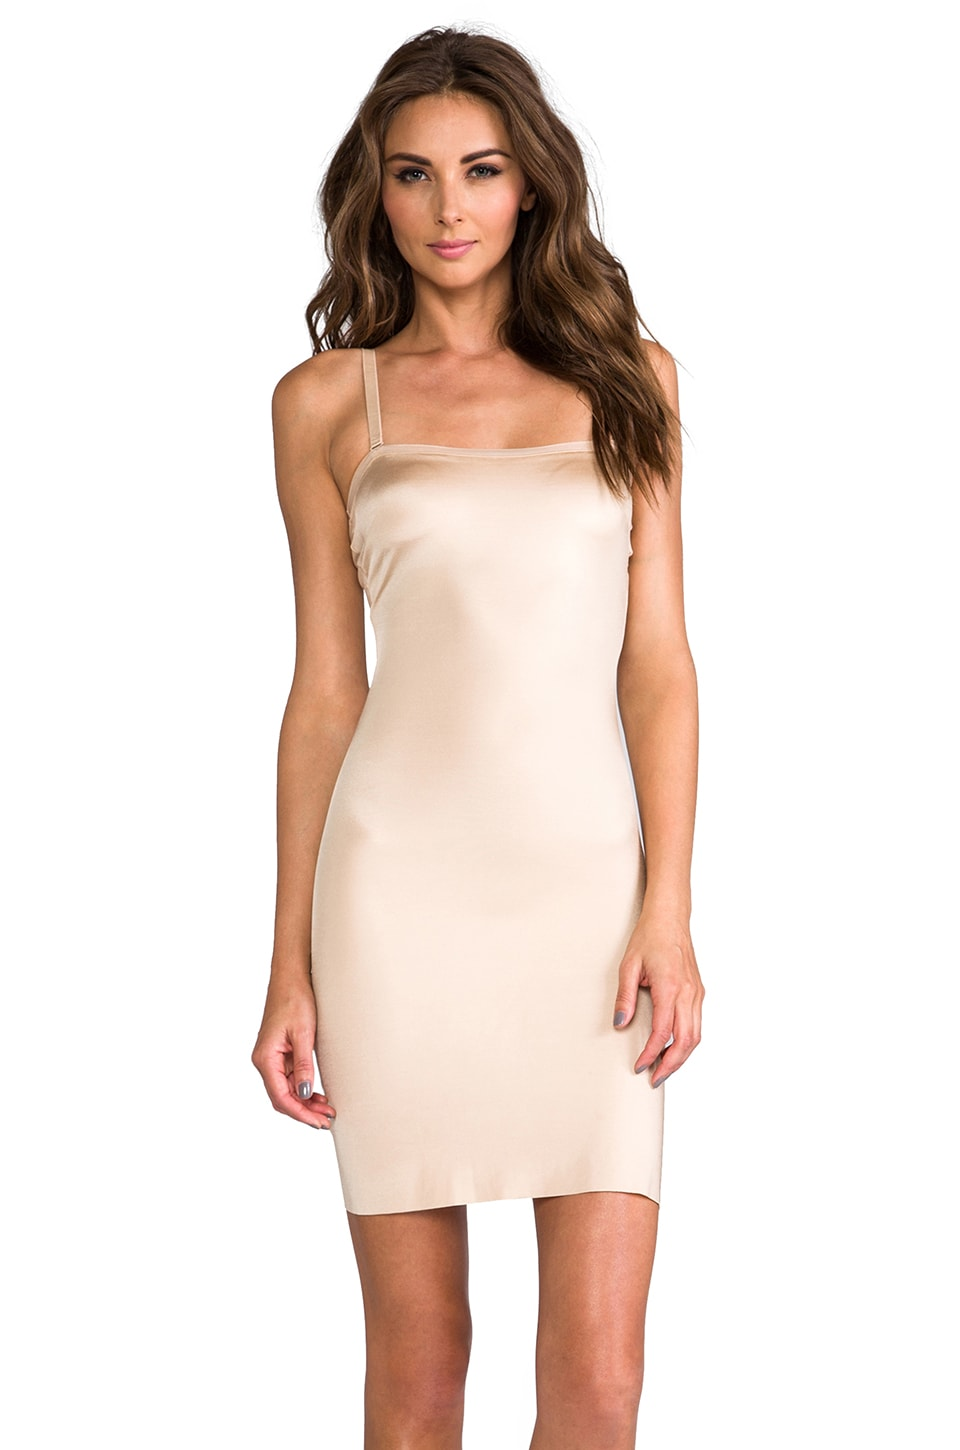 SPANX Slimplicity Convertible Slip in Nude